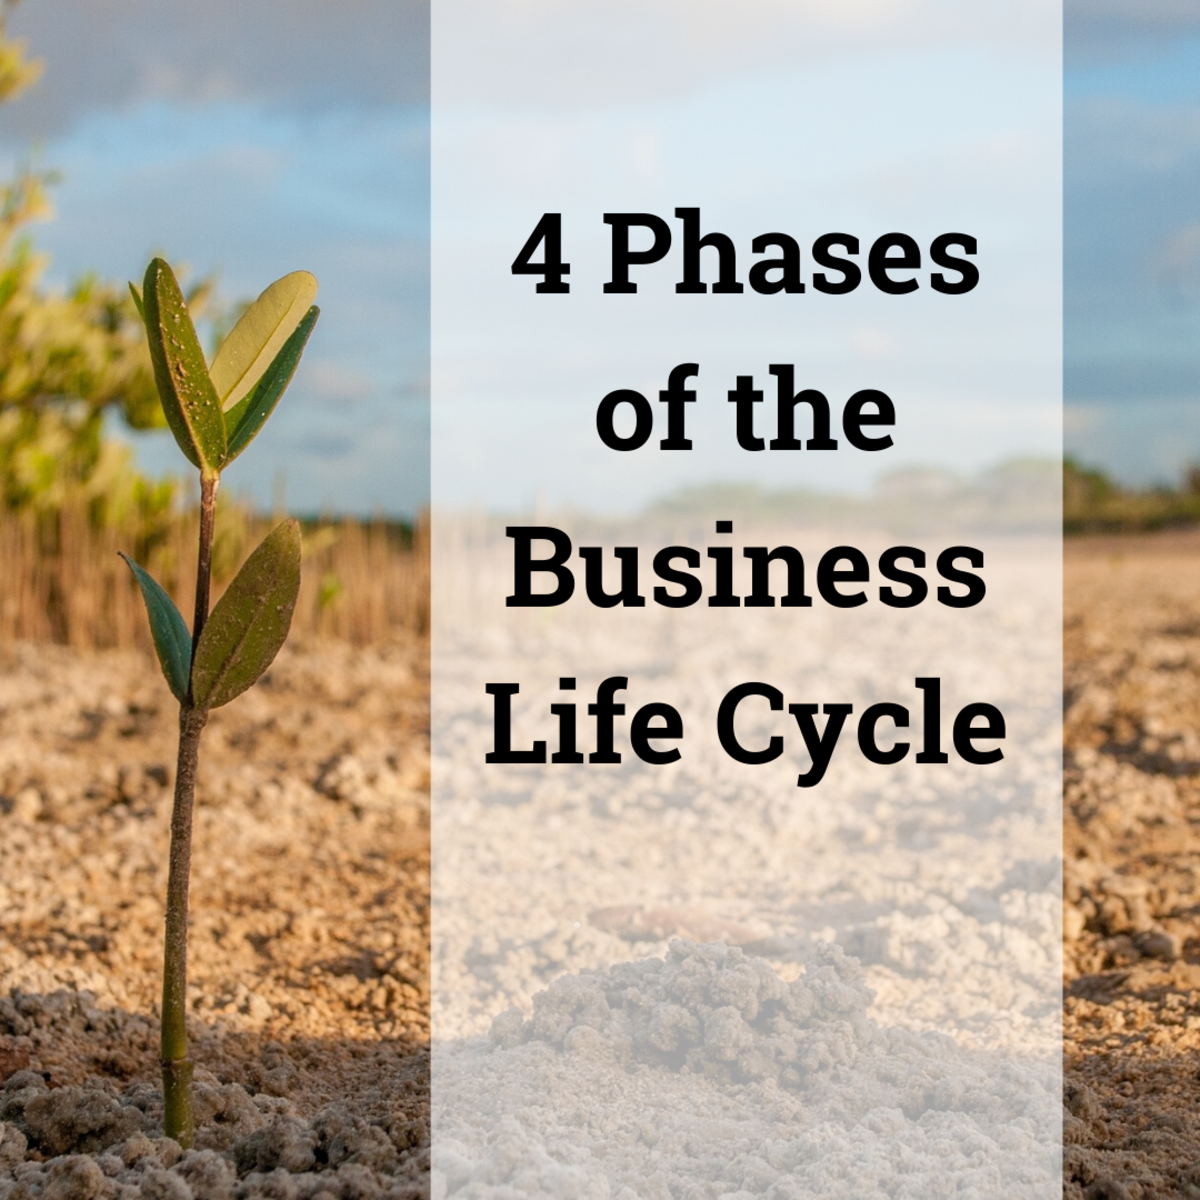 The Business Life Cycle: From Establishment to Post-Maturity